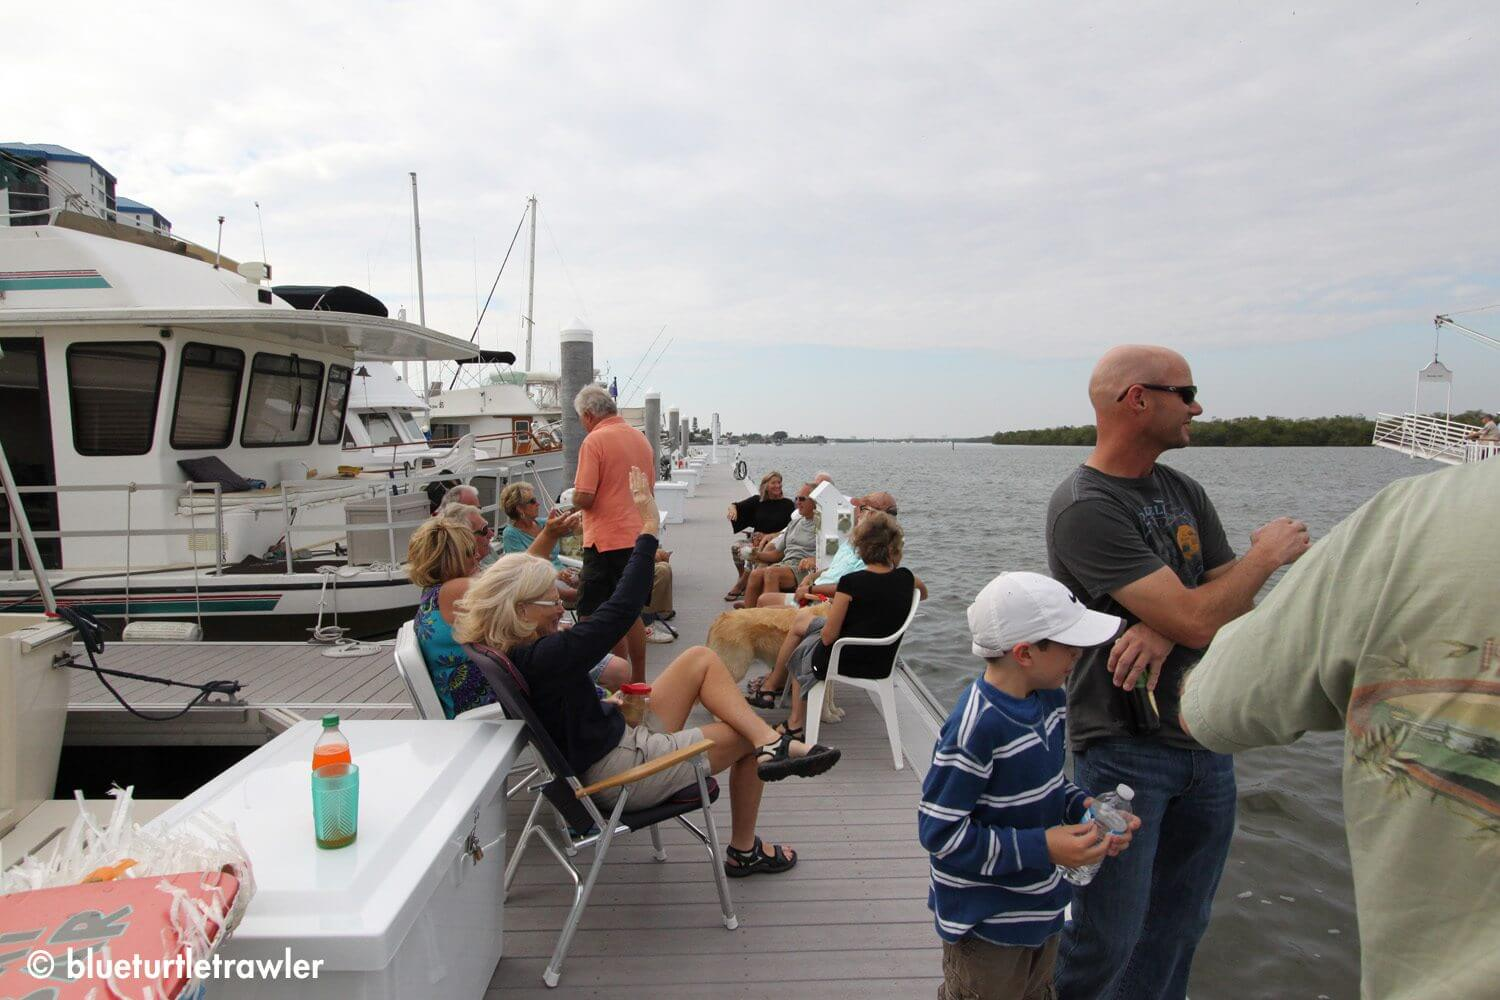 Since the paddle wheel cruise was cancelled, the dock party started early